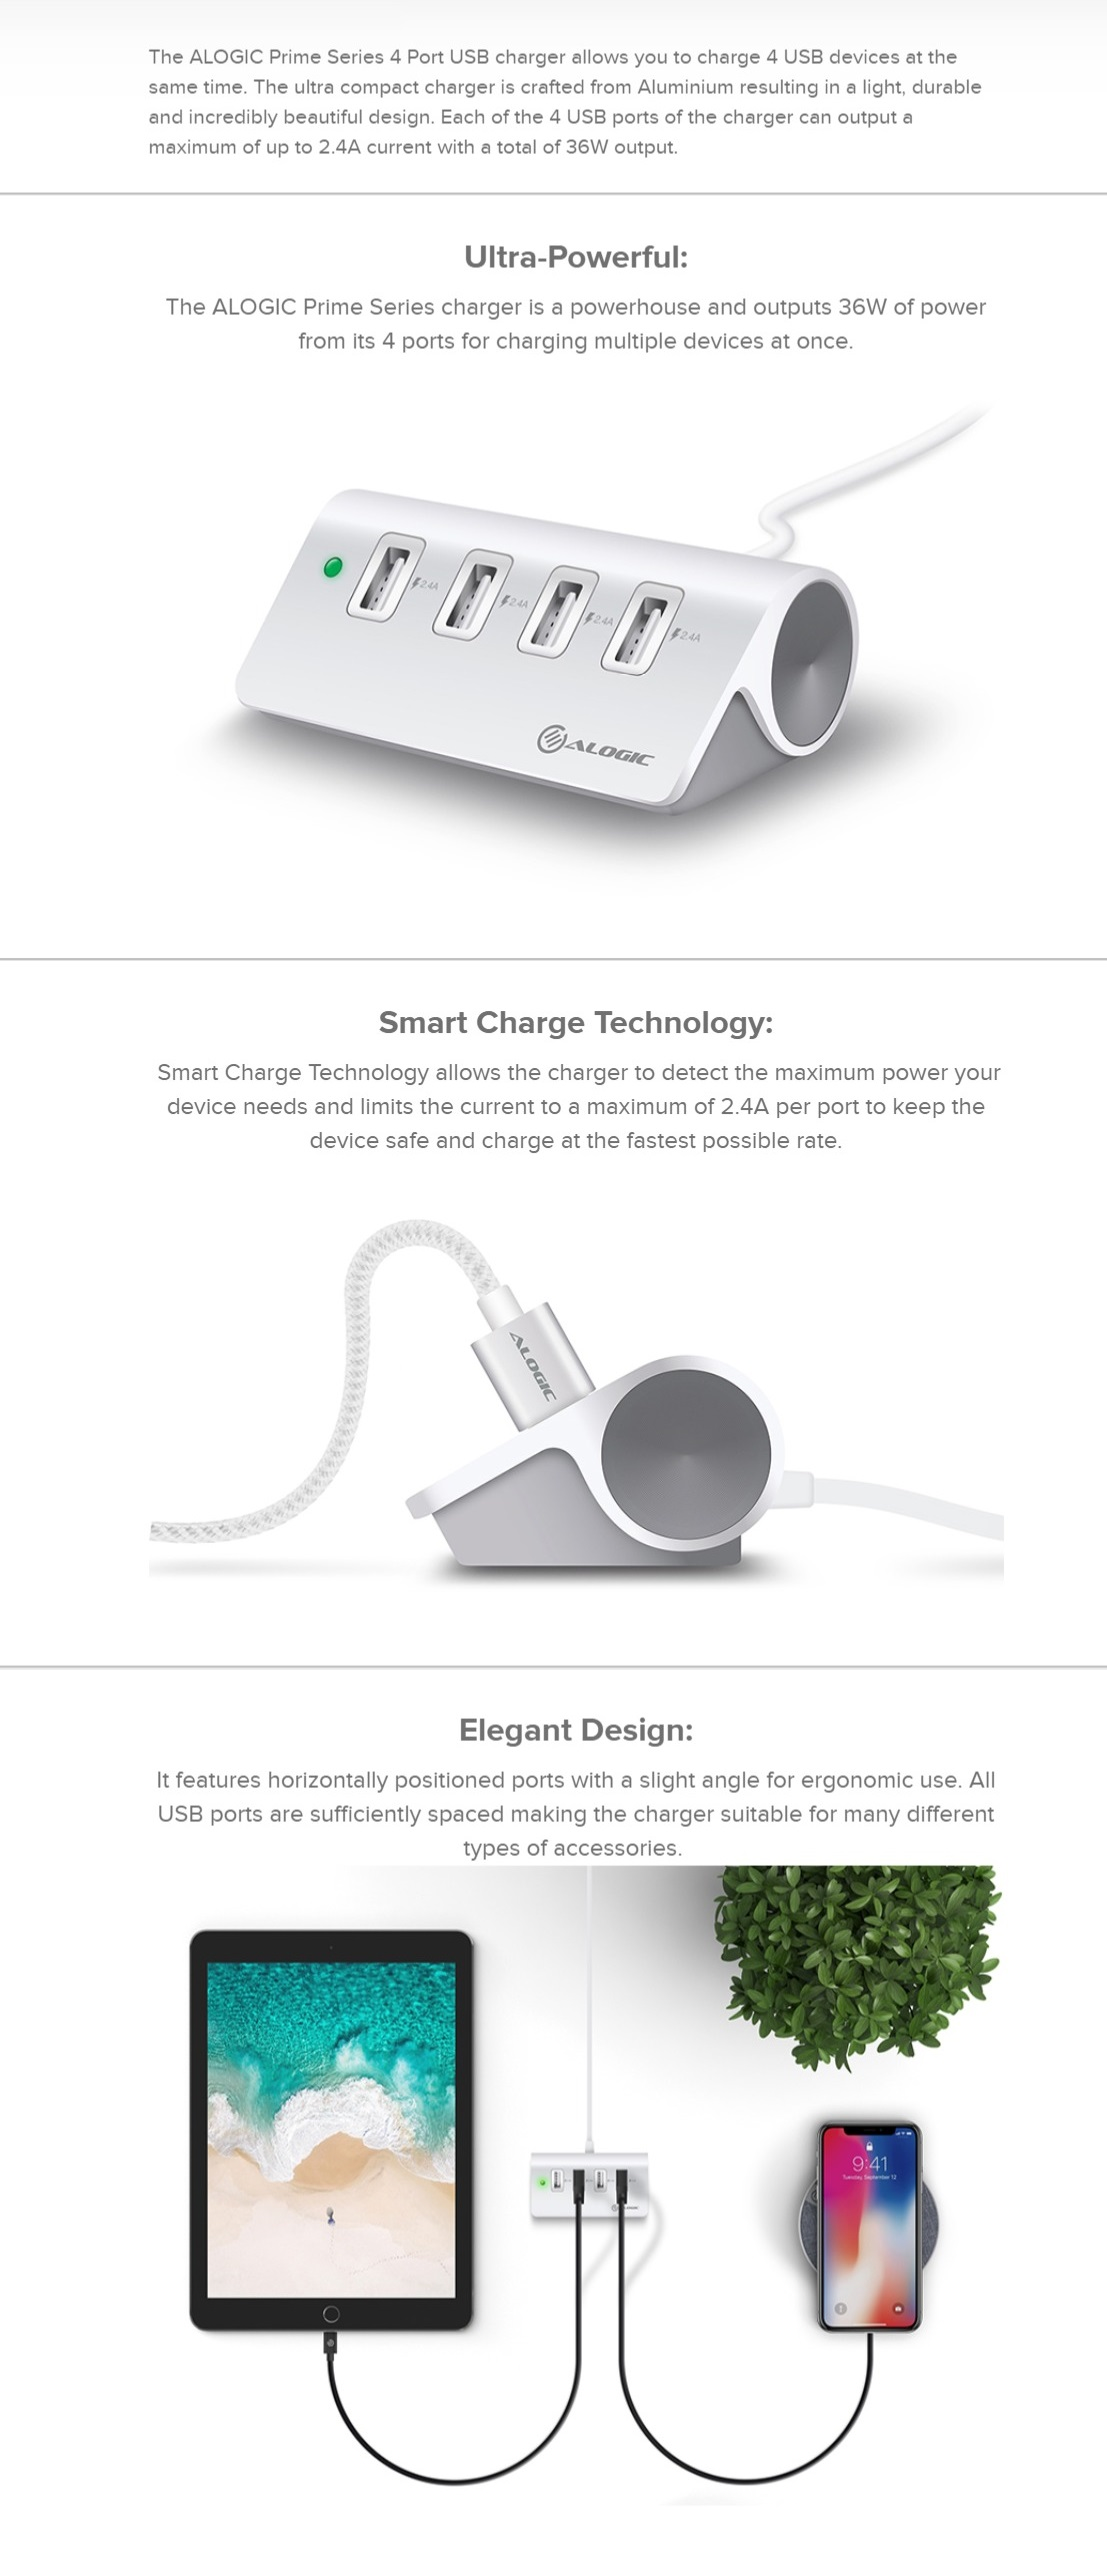 Alogic 4 Port USB Charger with Smart Charge - 4 x 2.4A Outputs - Prime Series